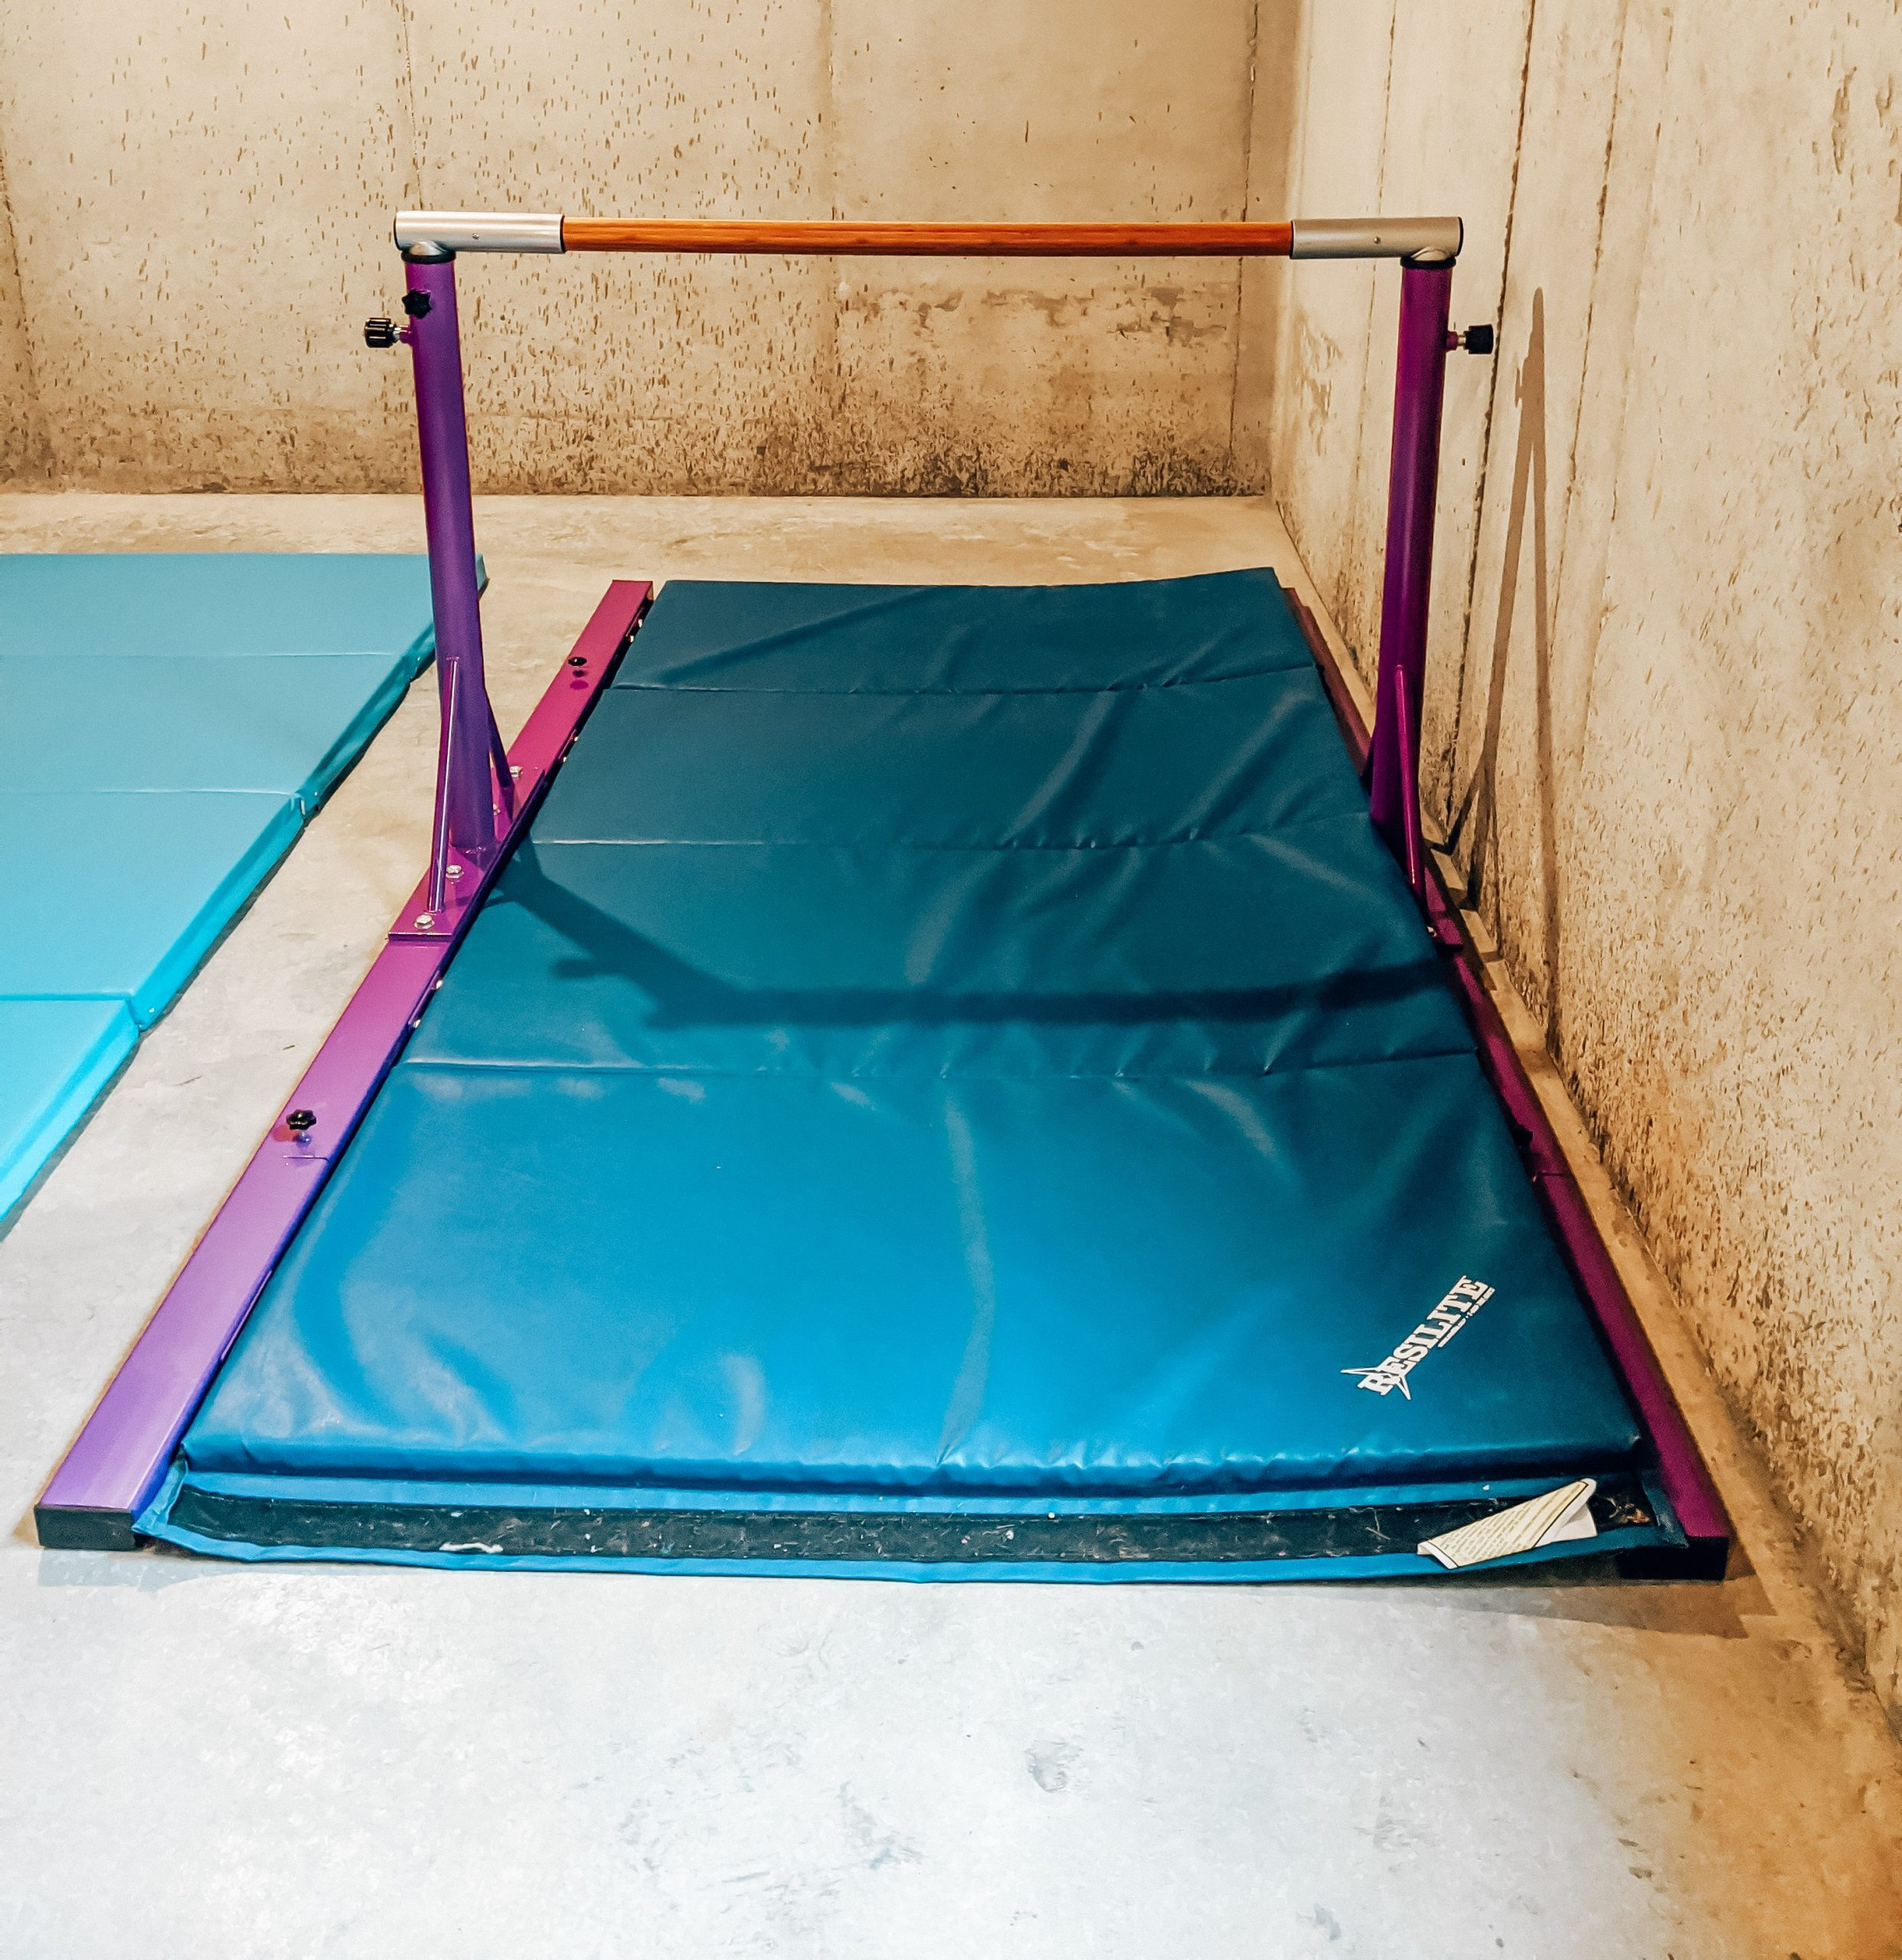 Best Gymnastics Equipment for Home - Home Gymnastics Setup - Home Gymnastics Equipment: Kansas City blogger Tricia Nibarger shows the best gymnastics equipment for home with her family's home gymnastics setup! #gymnastics #littlegymnast #gymnast